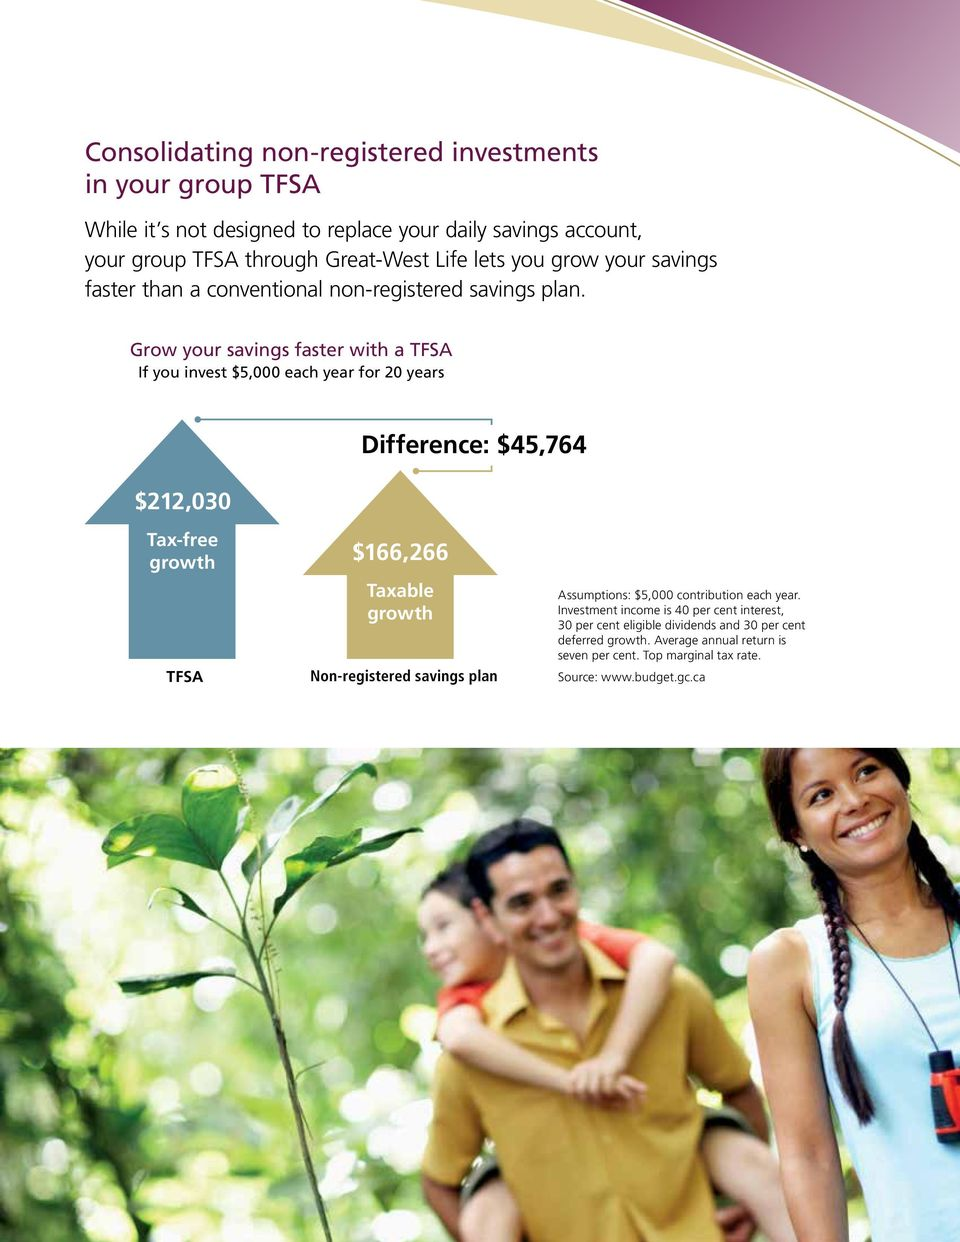 Grow your savings faster with a TFSA If you invest $5,000 each year for 20 years $212,030 Difference: $45,764 Tax-free growth TFSA $166,266 Taxable growth